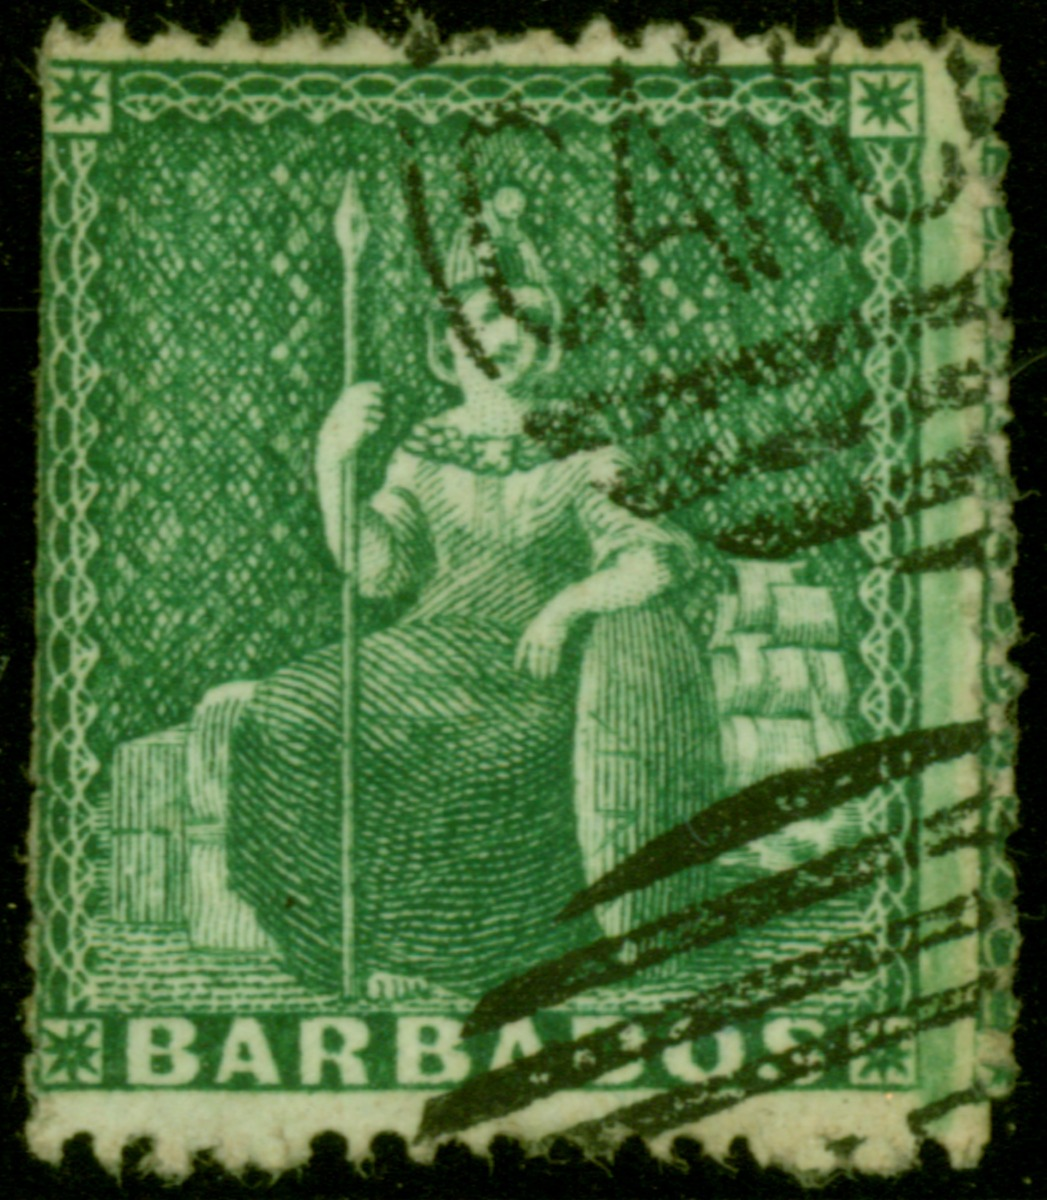 Barbados 1861 SG17 Perkins Bacon Hand Cancelled Stamp